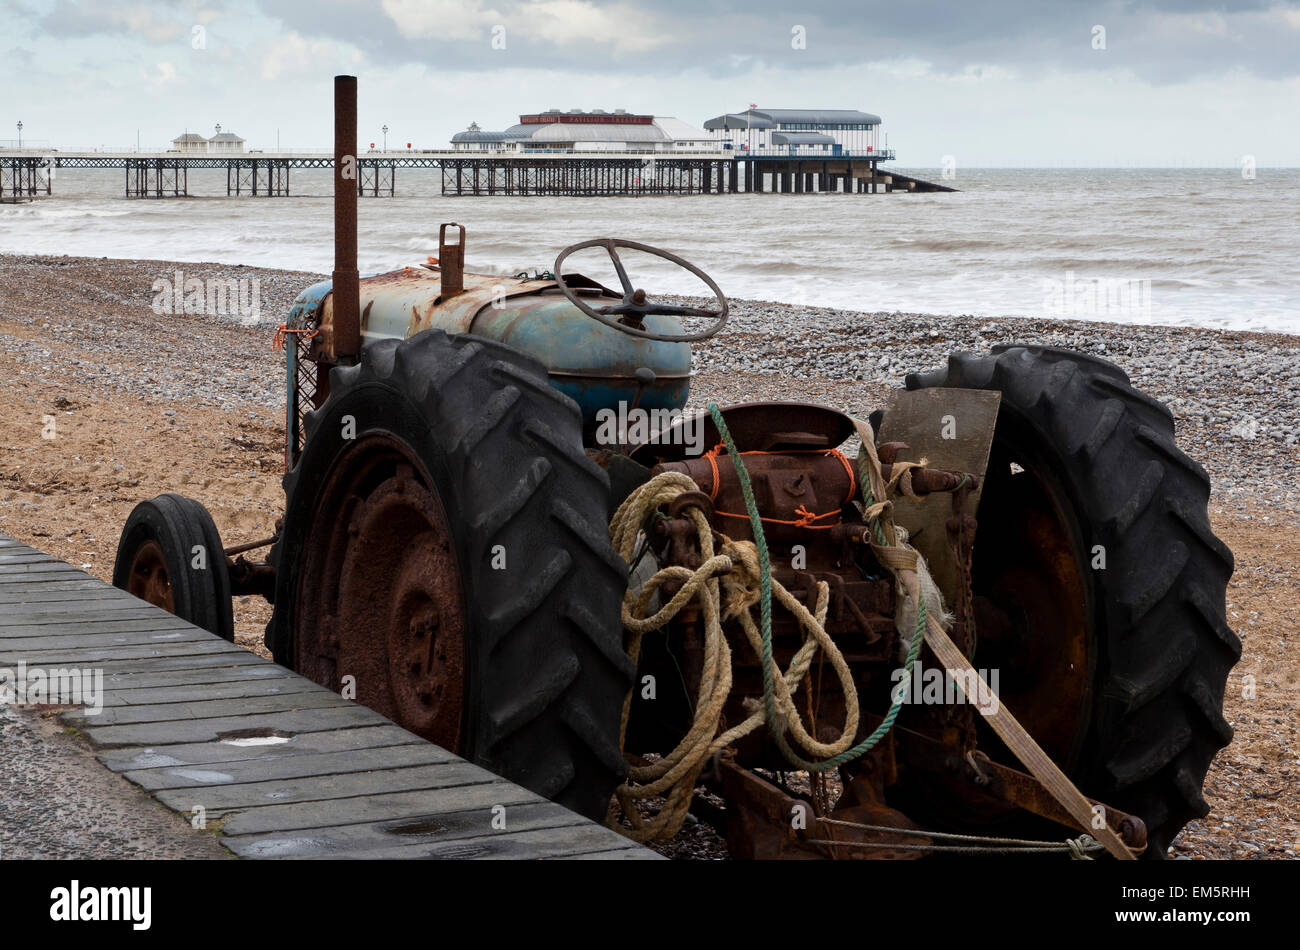 An old vintage tractor used in the fishing industry standing on the beach at Cromer, Norfolk UK - Stock Image